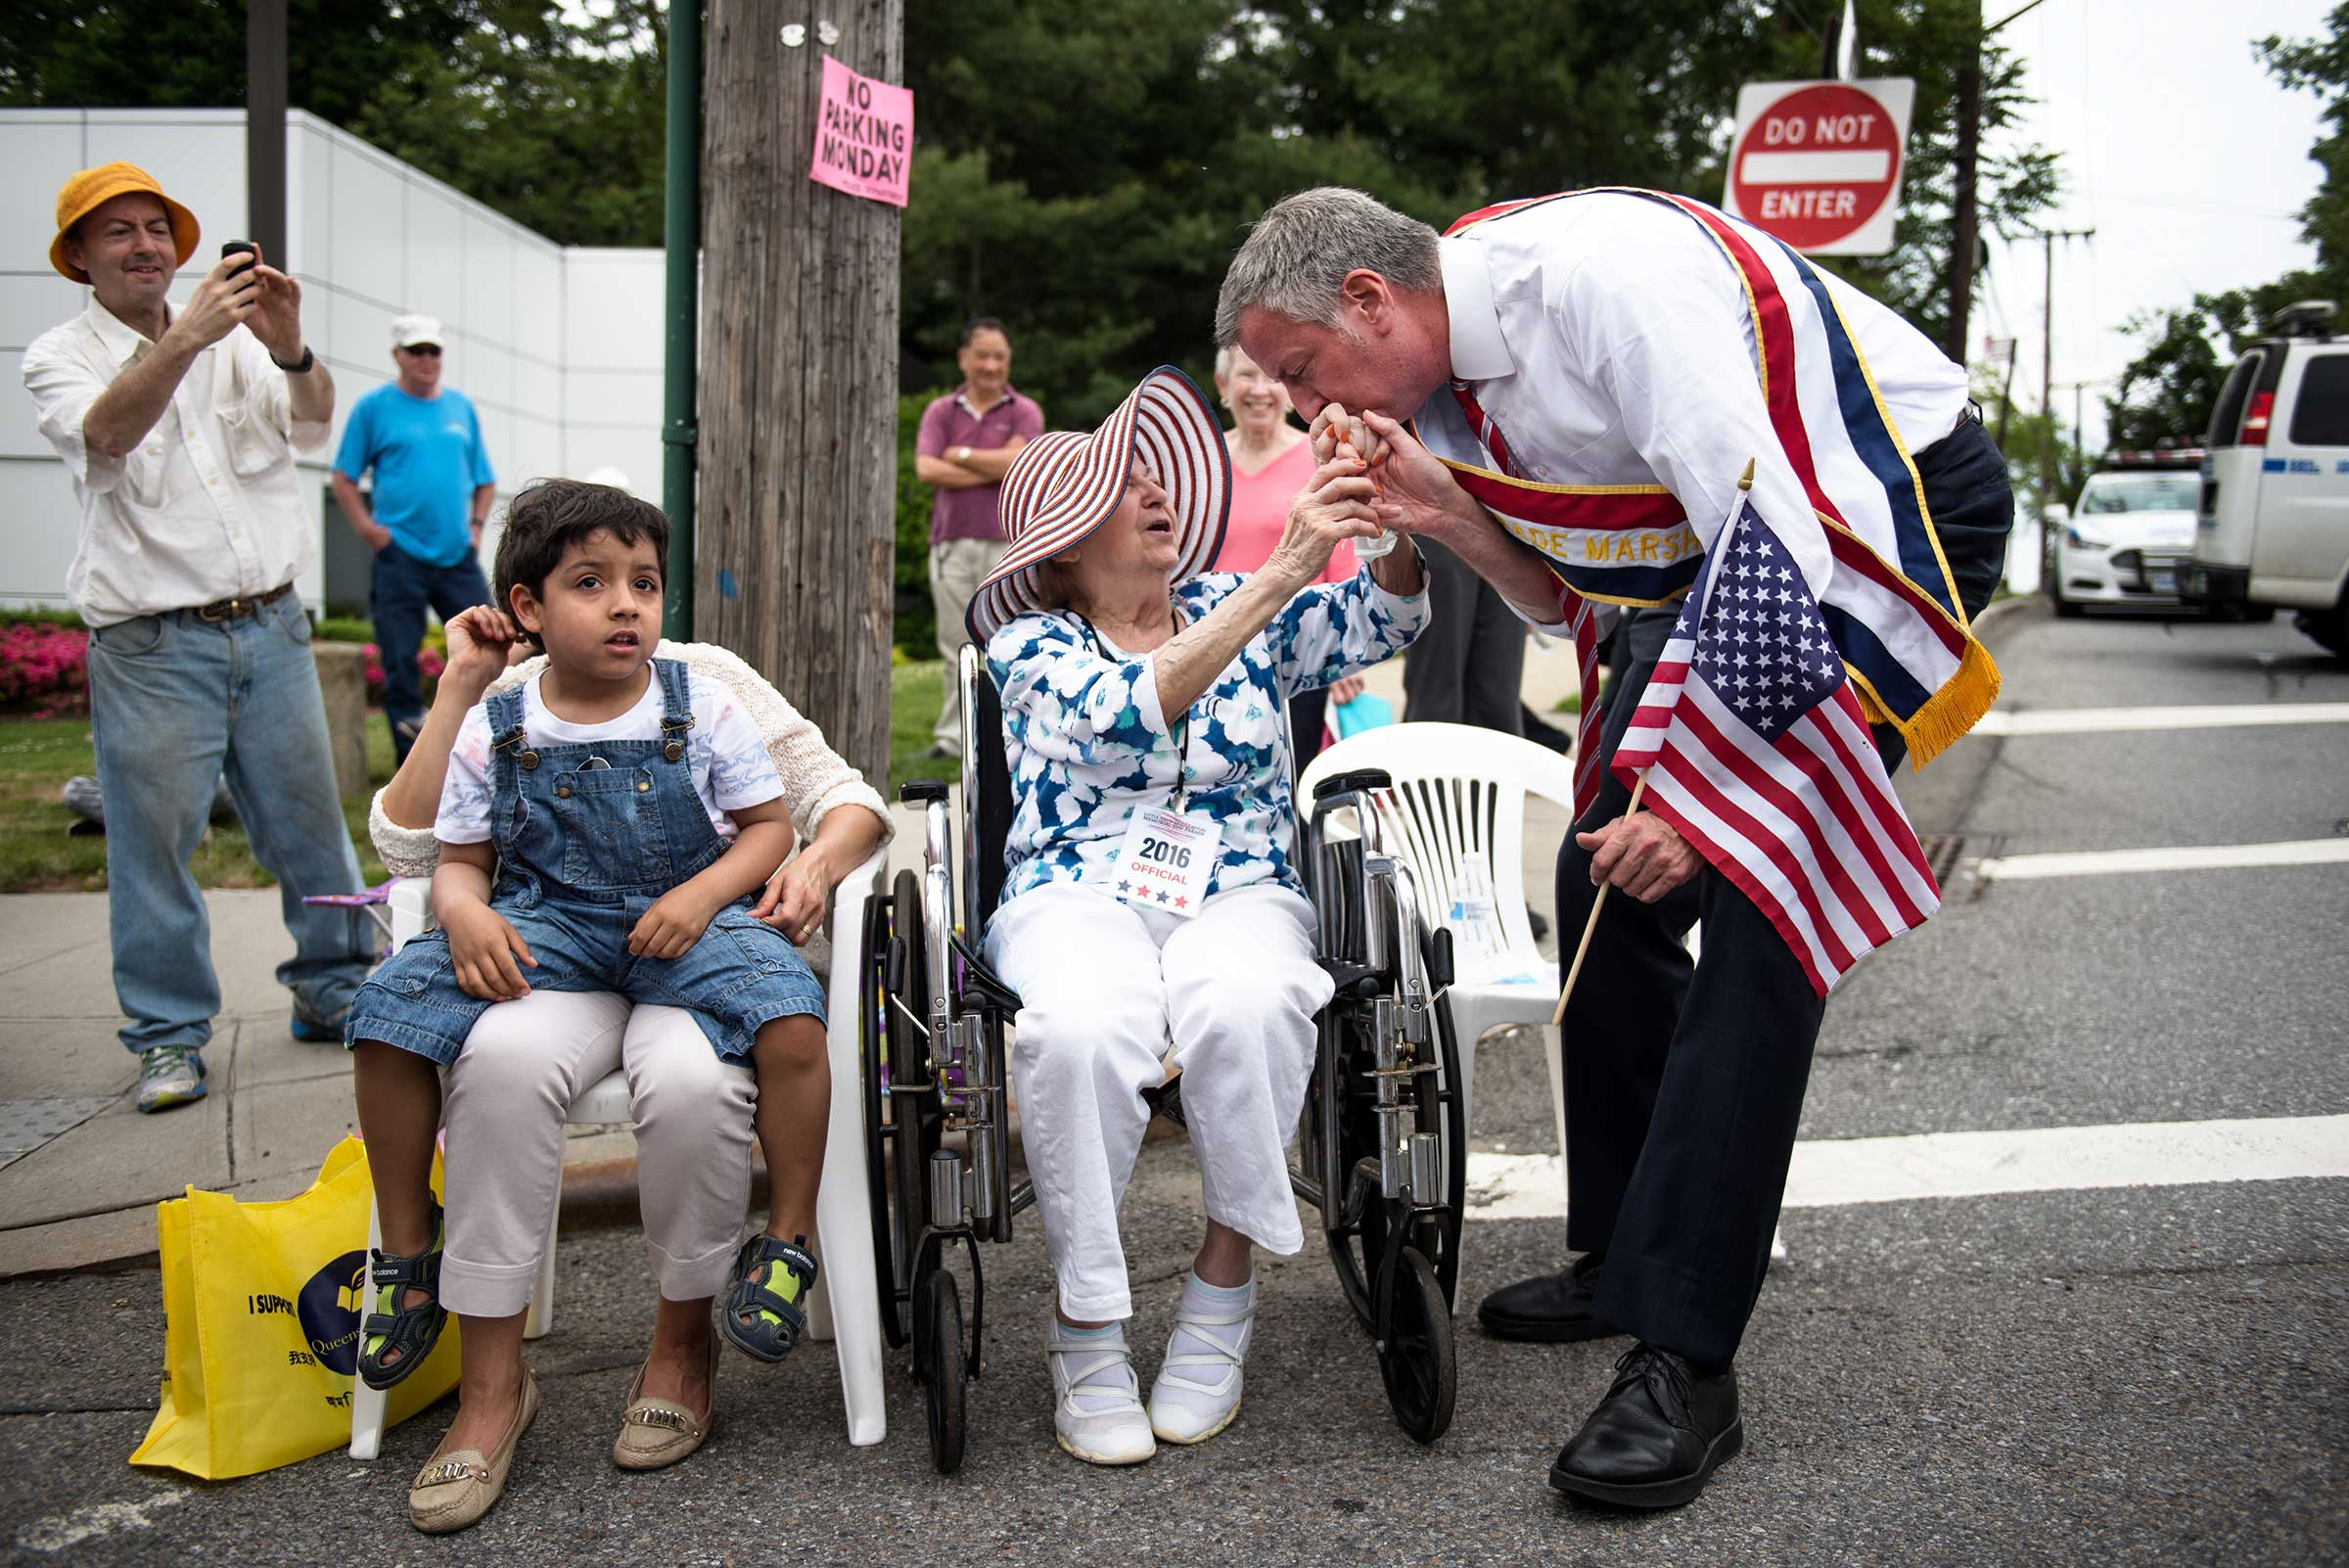 Little Neck Memorial Day Parade in Queens, New York.